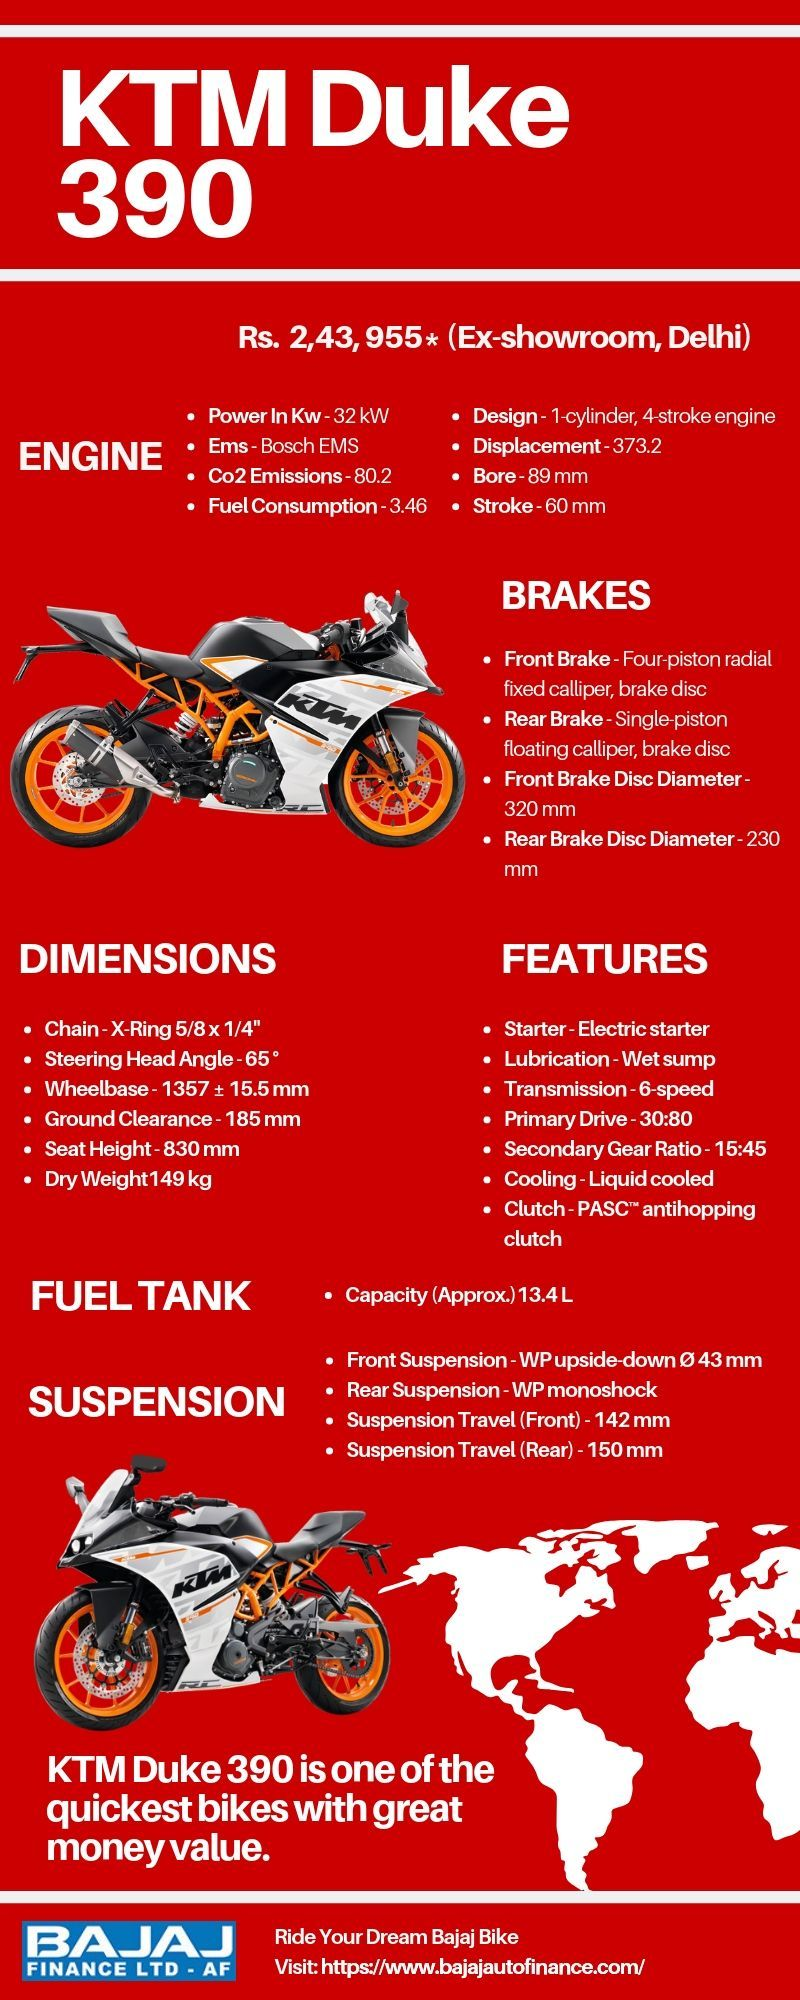 Ktm Duke 390 Is One Of The Most Popular And Successful Motorcycle